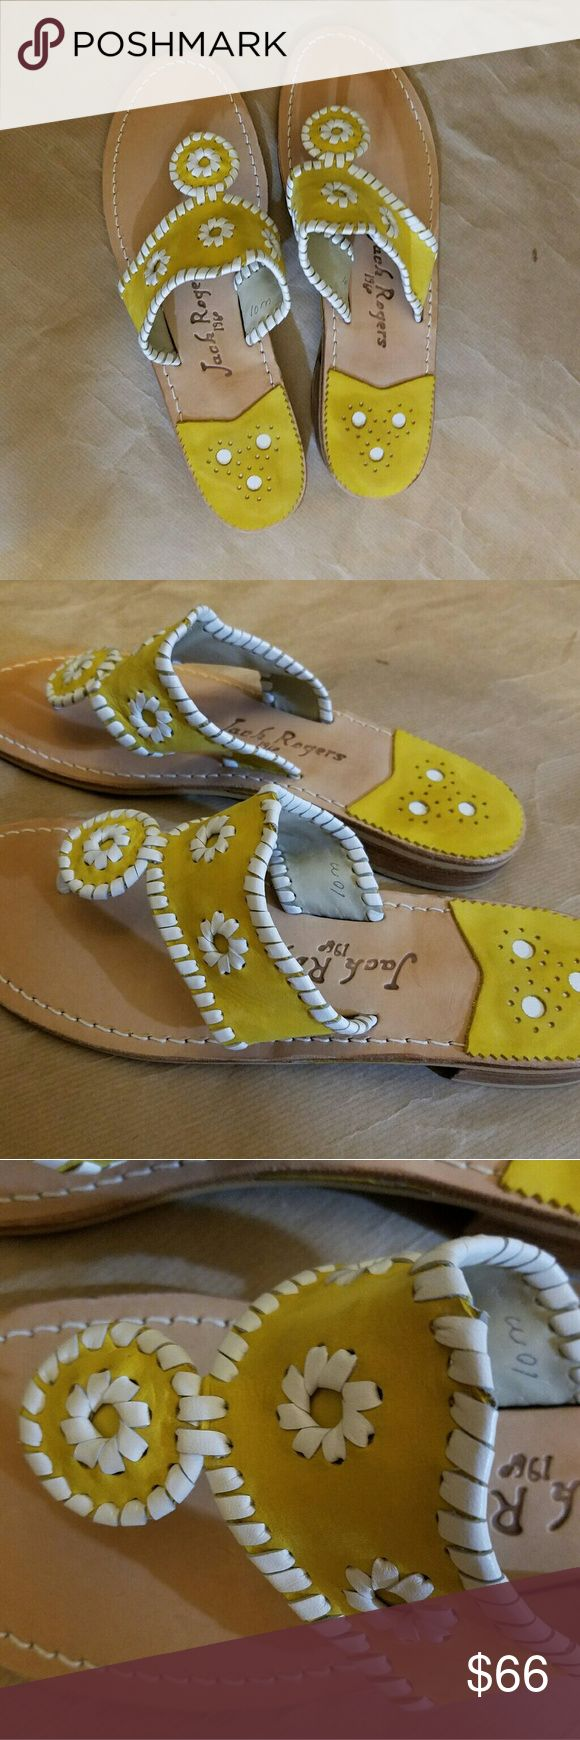 Jack Rogers size 10 Jack Rogers Navajo Sandals Yellow White size 10 NWOB Jack Rogers Shoes